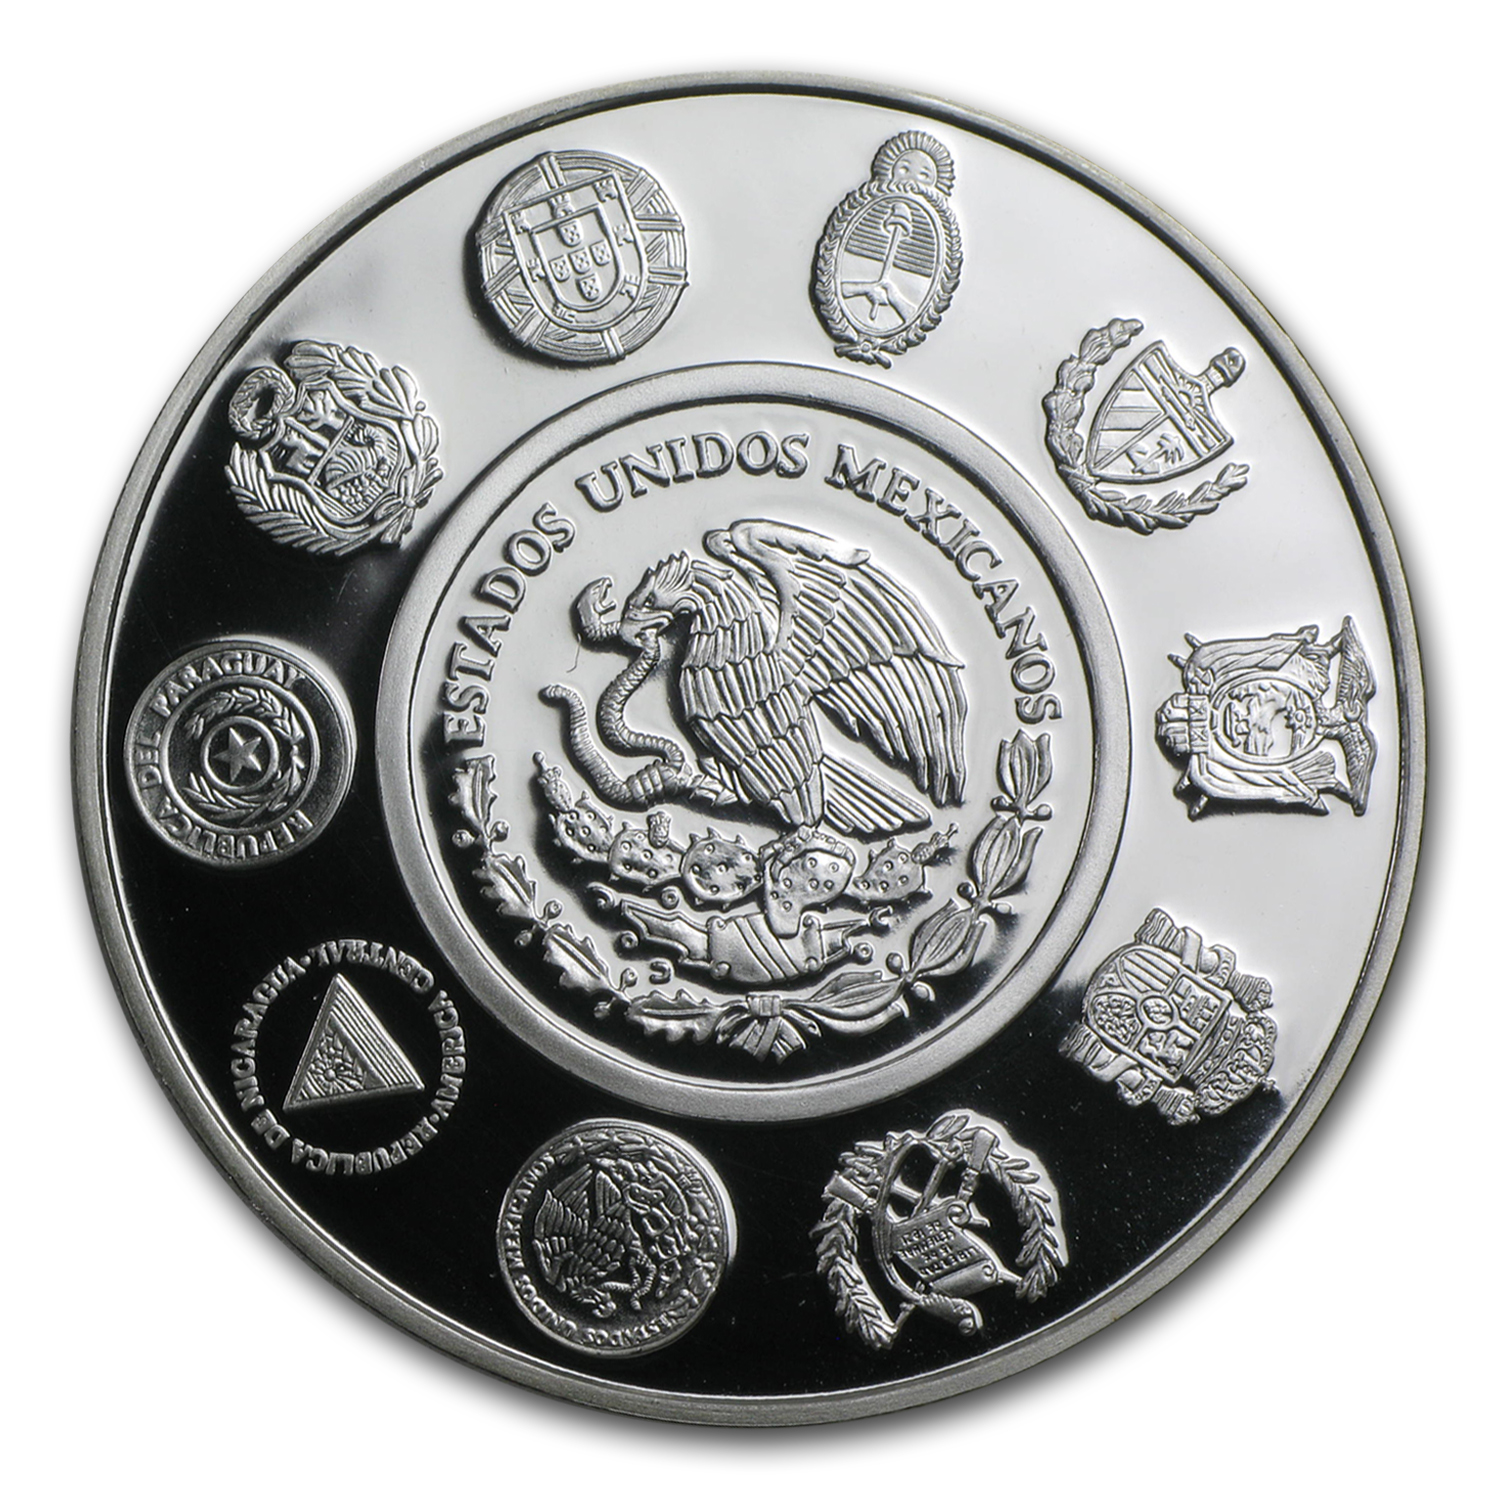 2003 $5 Acapulco Galleon Mexican Silver Peso Proof